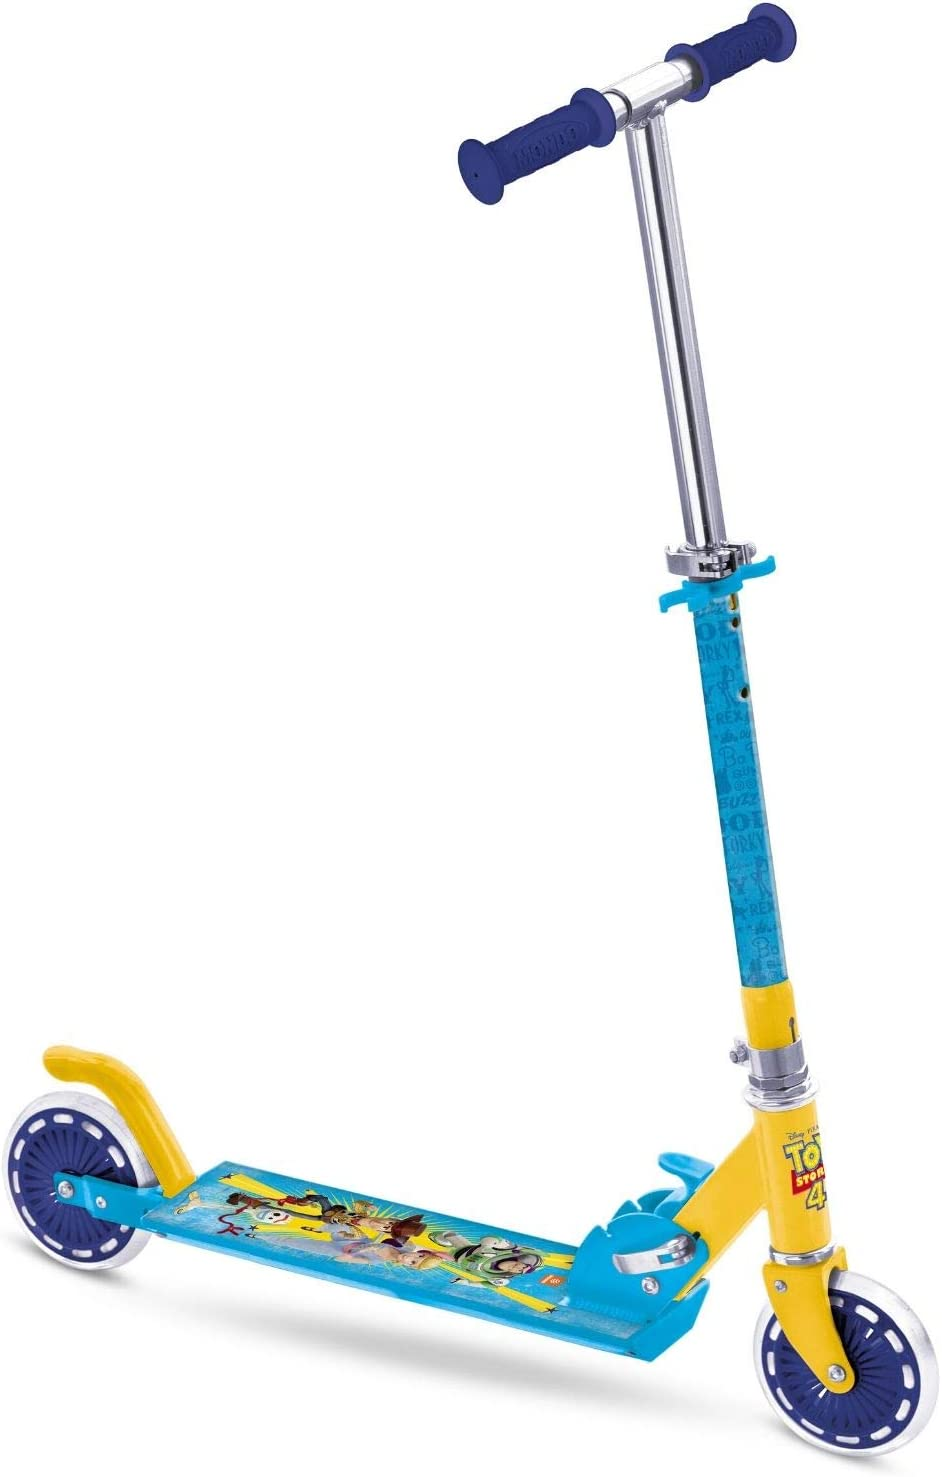 Amazon.com: Mondo Toy Story - Patinete de aluminio con 2 ...